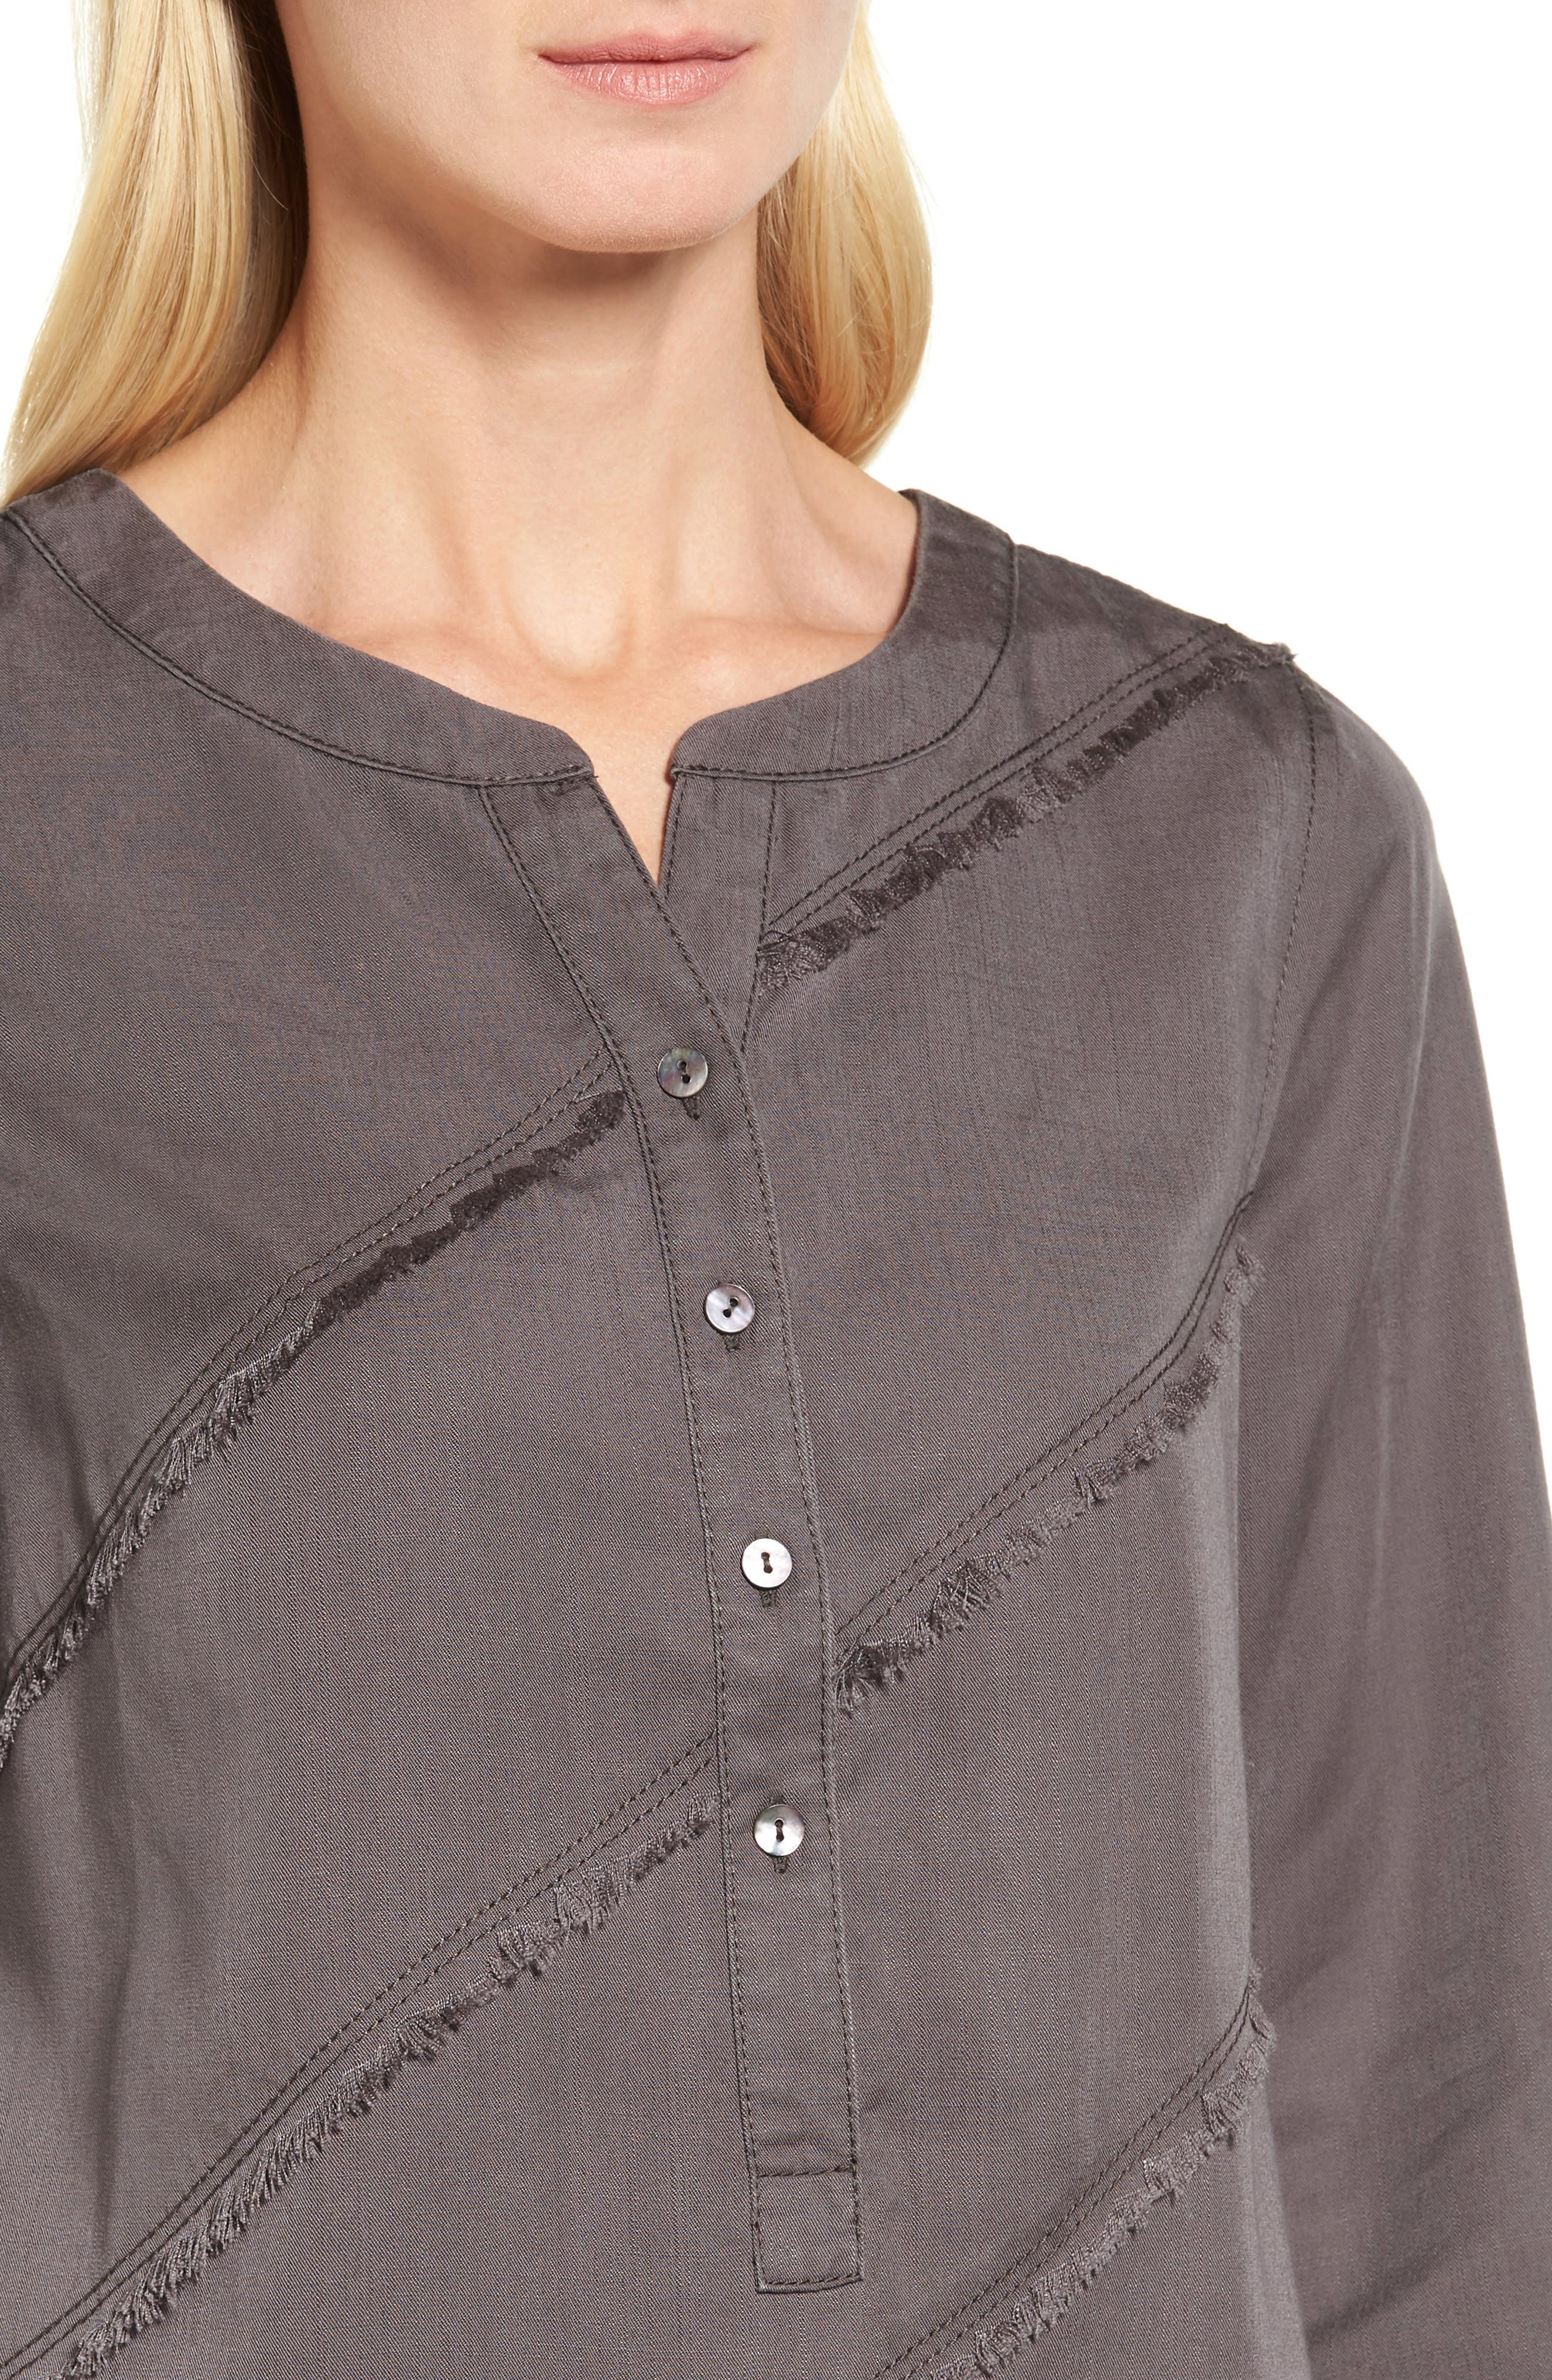 Tranquil Tunic Top,                             Alternate thumbnail 4, color,